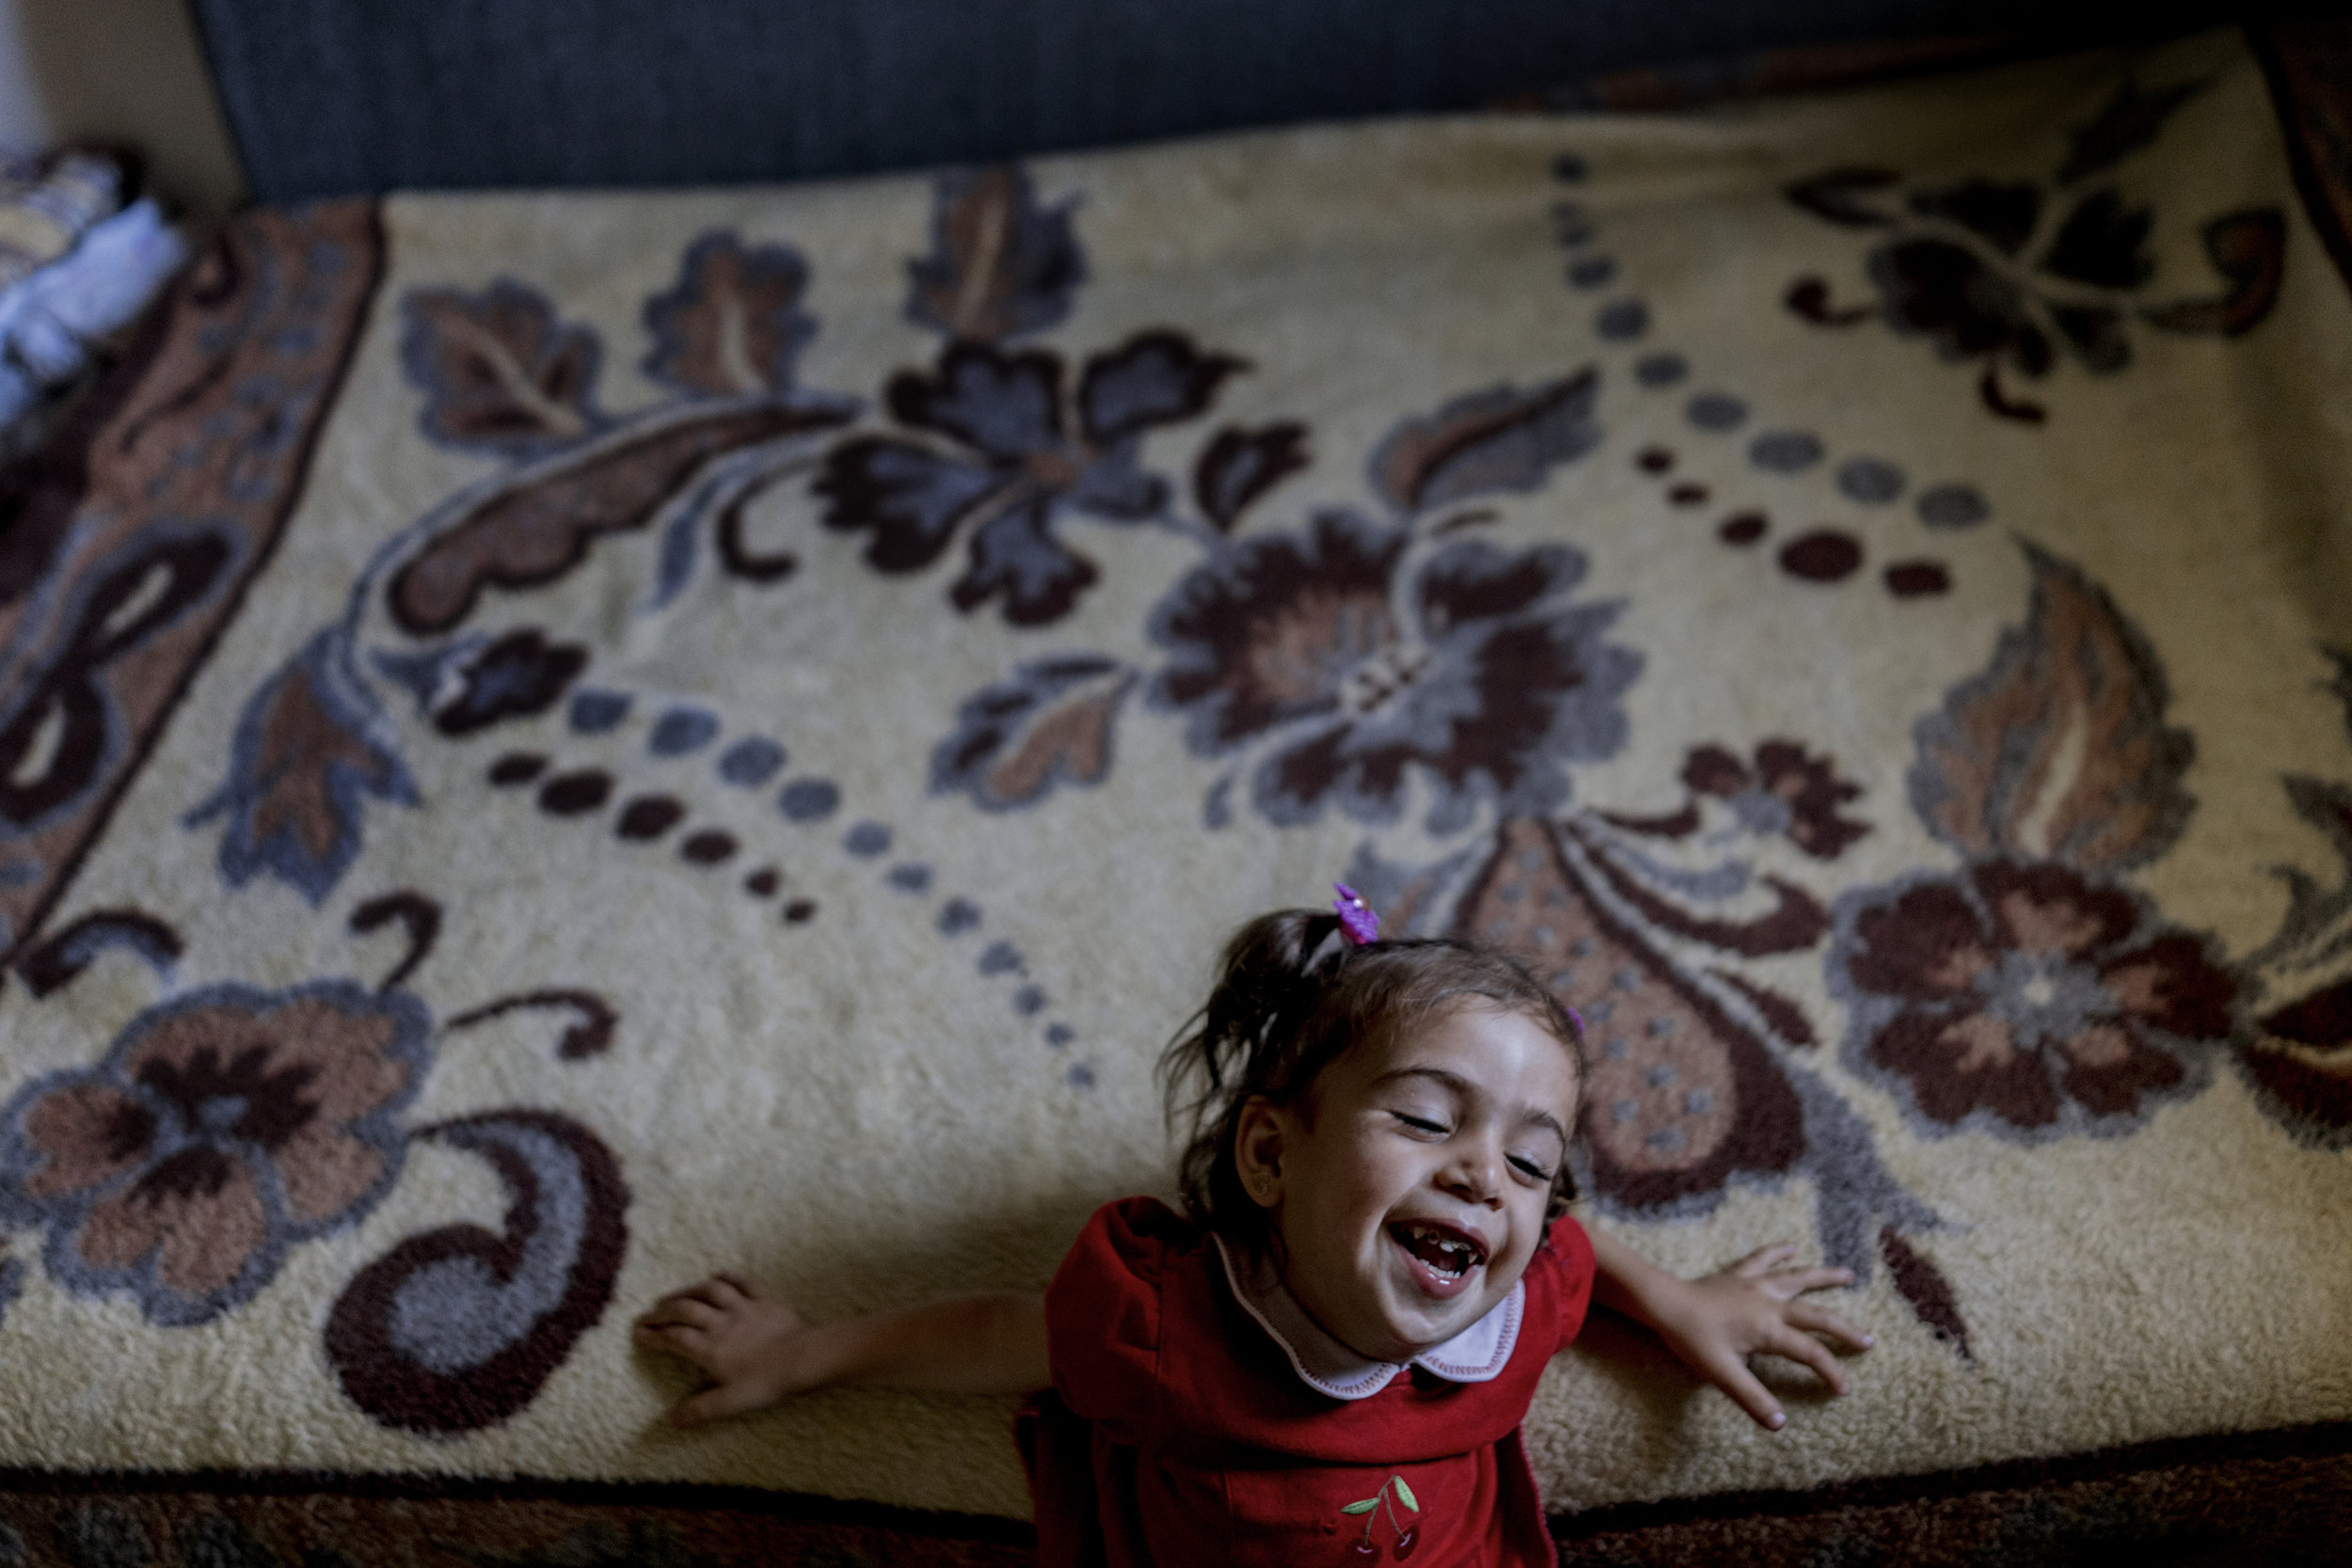 Liliane (2 years old)  suffer from Metabolic Disease which is hereditary and some of the symptoms the kids suffer are liver dysfunction, osteoporosis, mental retardation, heart disease, pulmonary disease. Her father Sohayb Mohamad a dayworker came to Lebanon from Syria with 3 children and his wife.